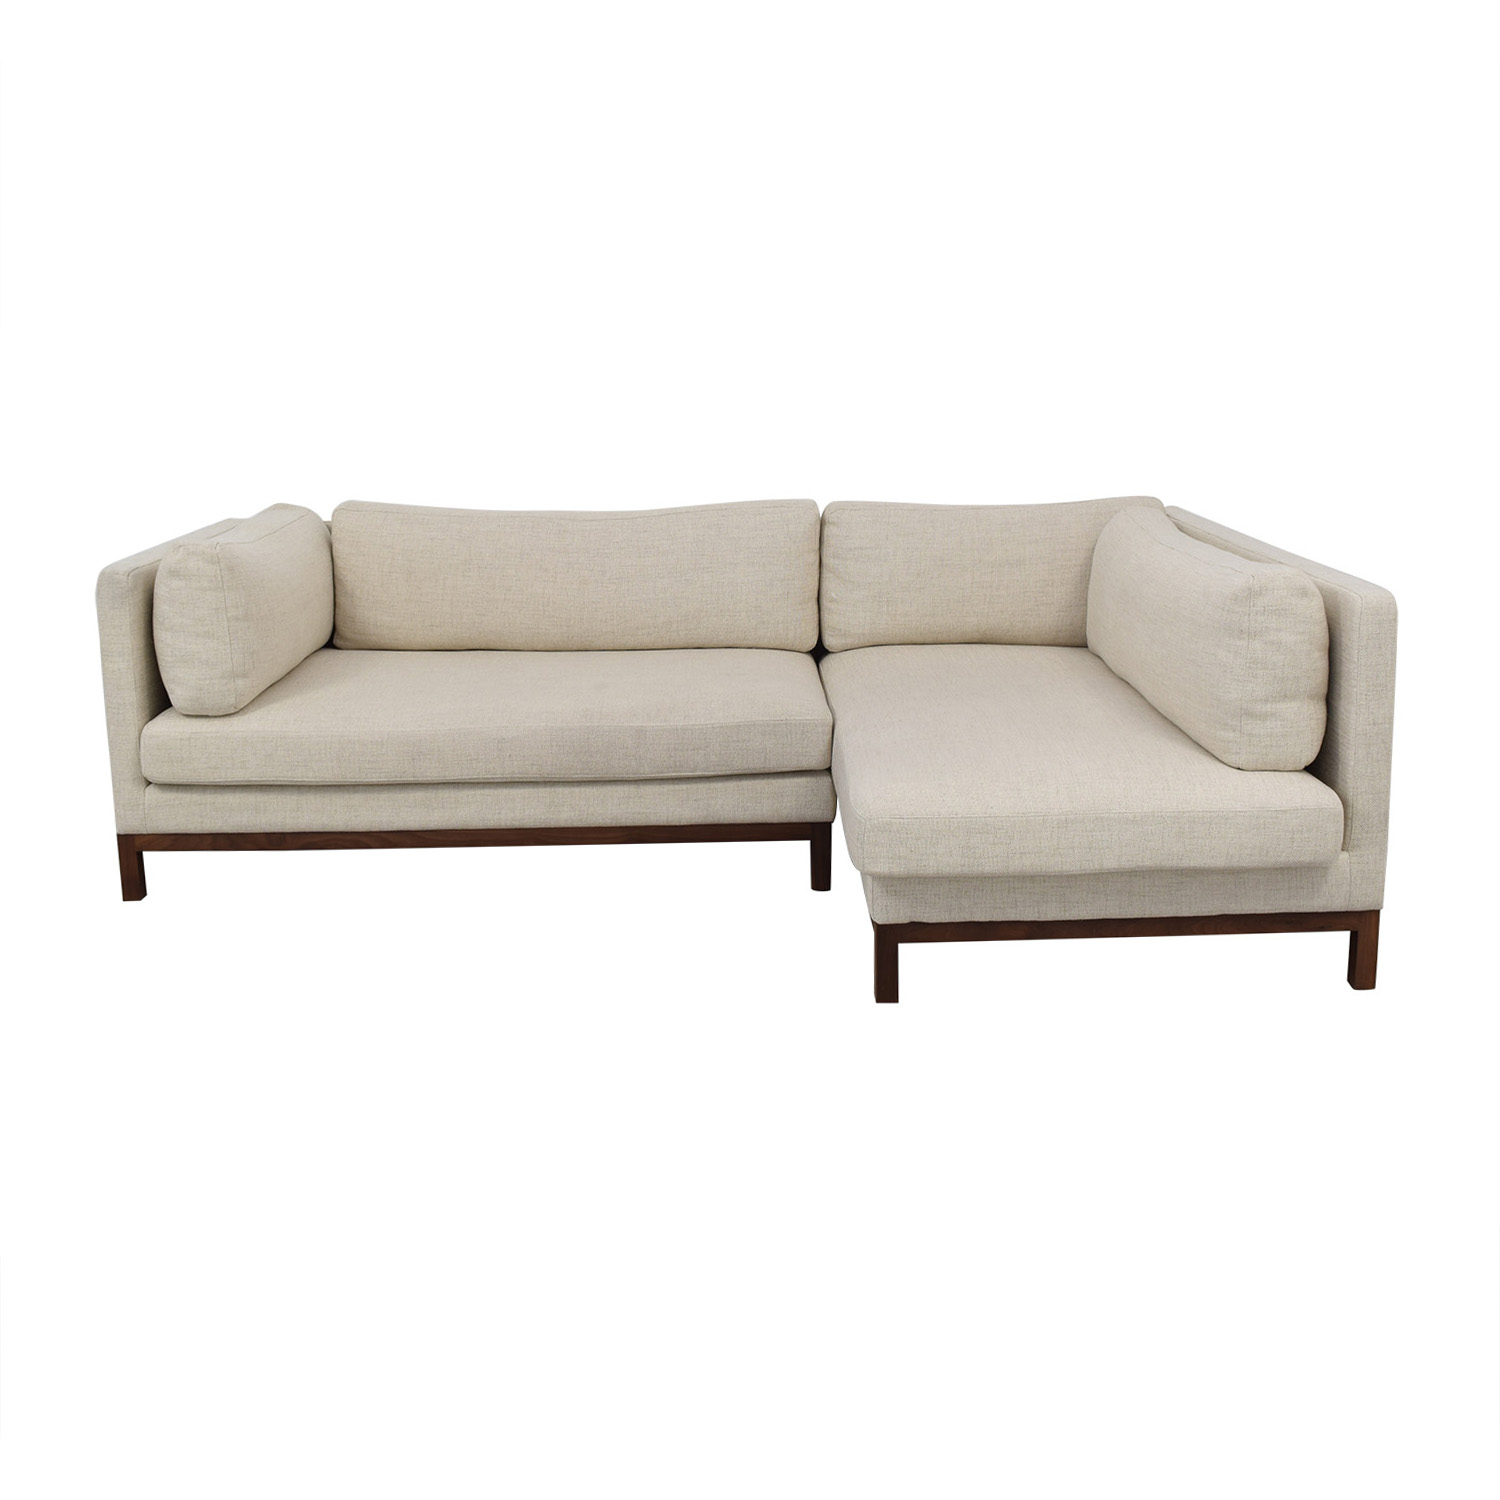 62 Off Jasper Pebble Weave Right Chaise Sectional Sofas